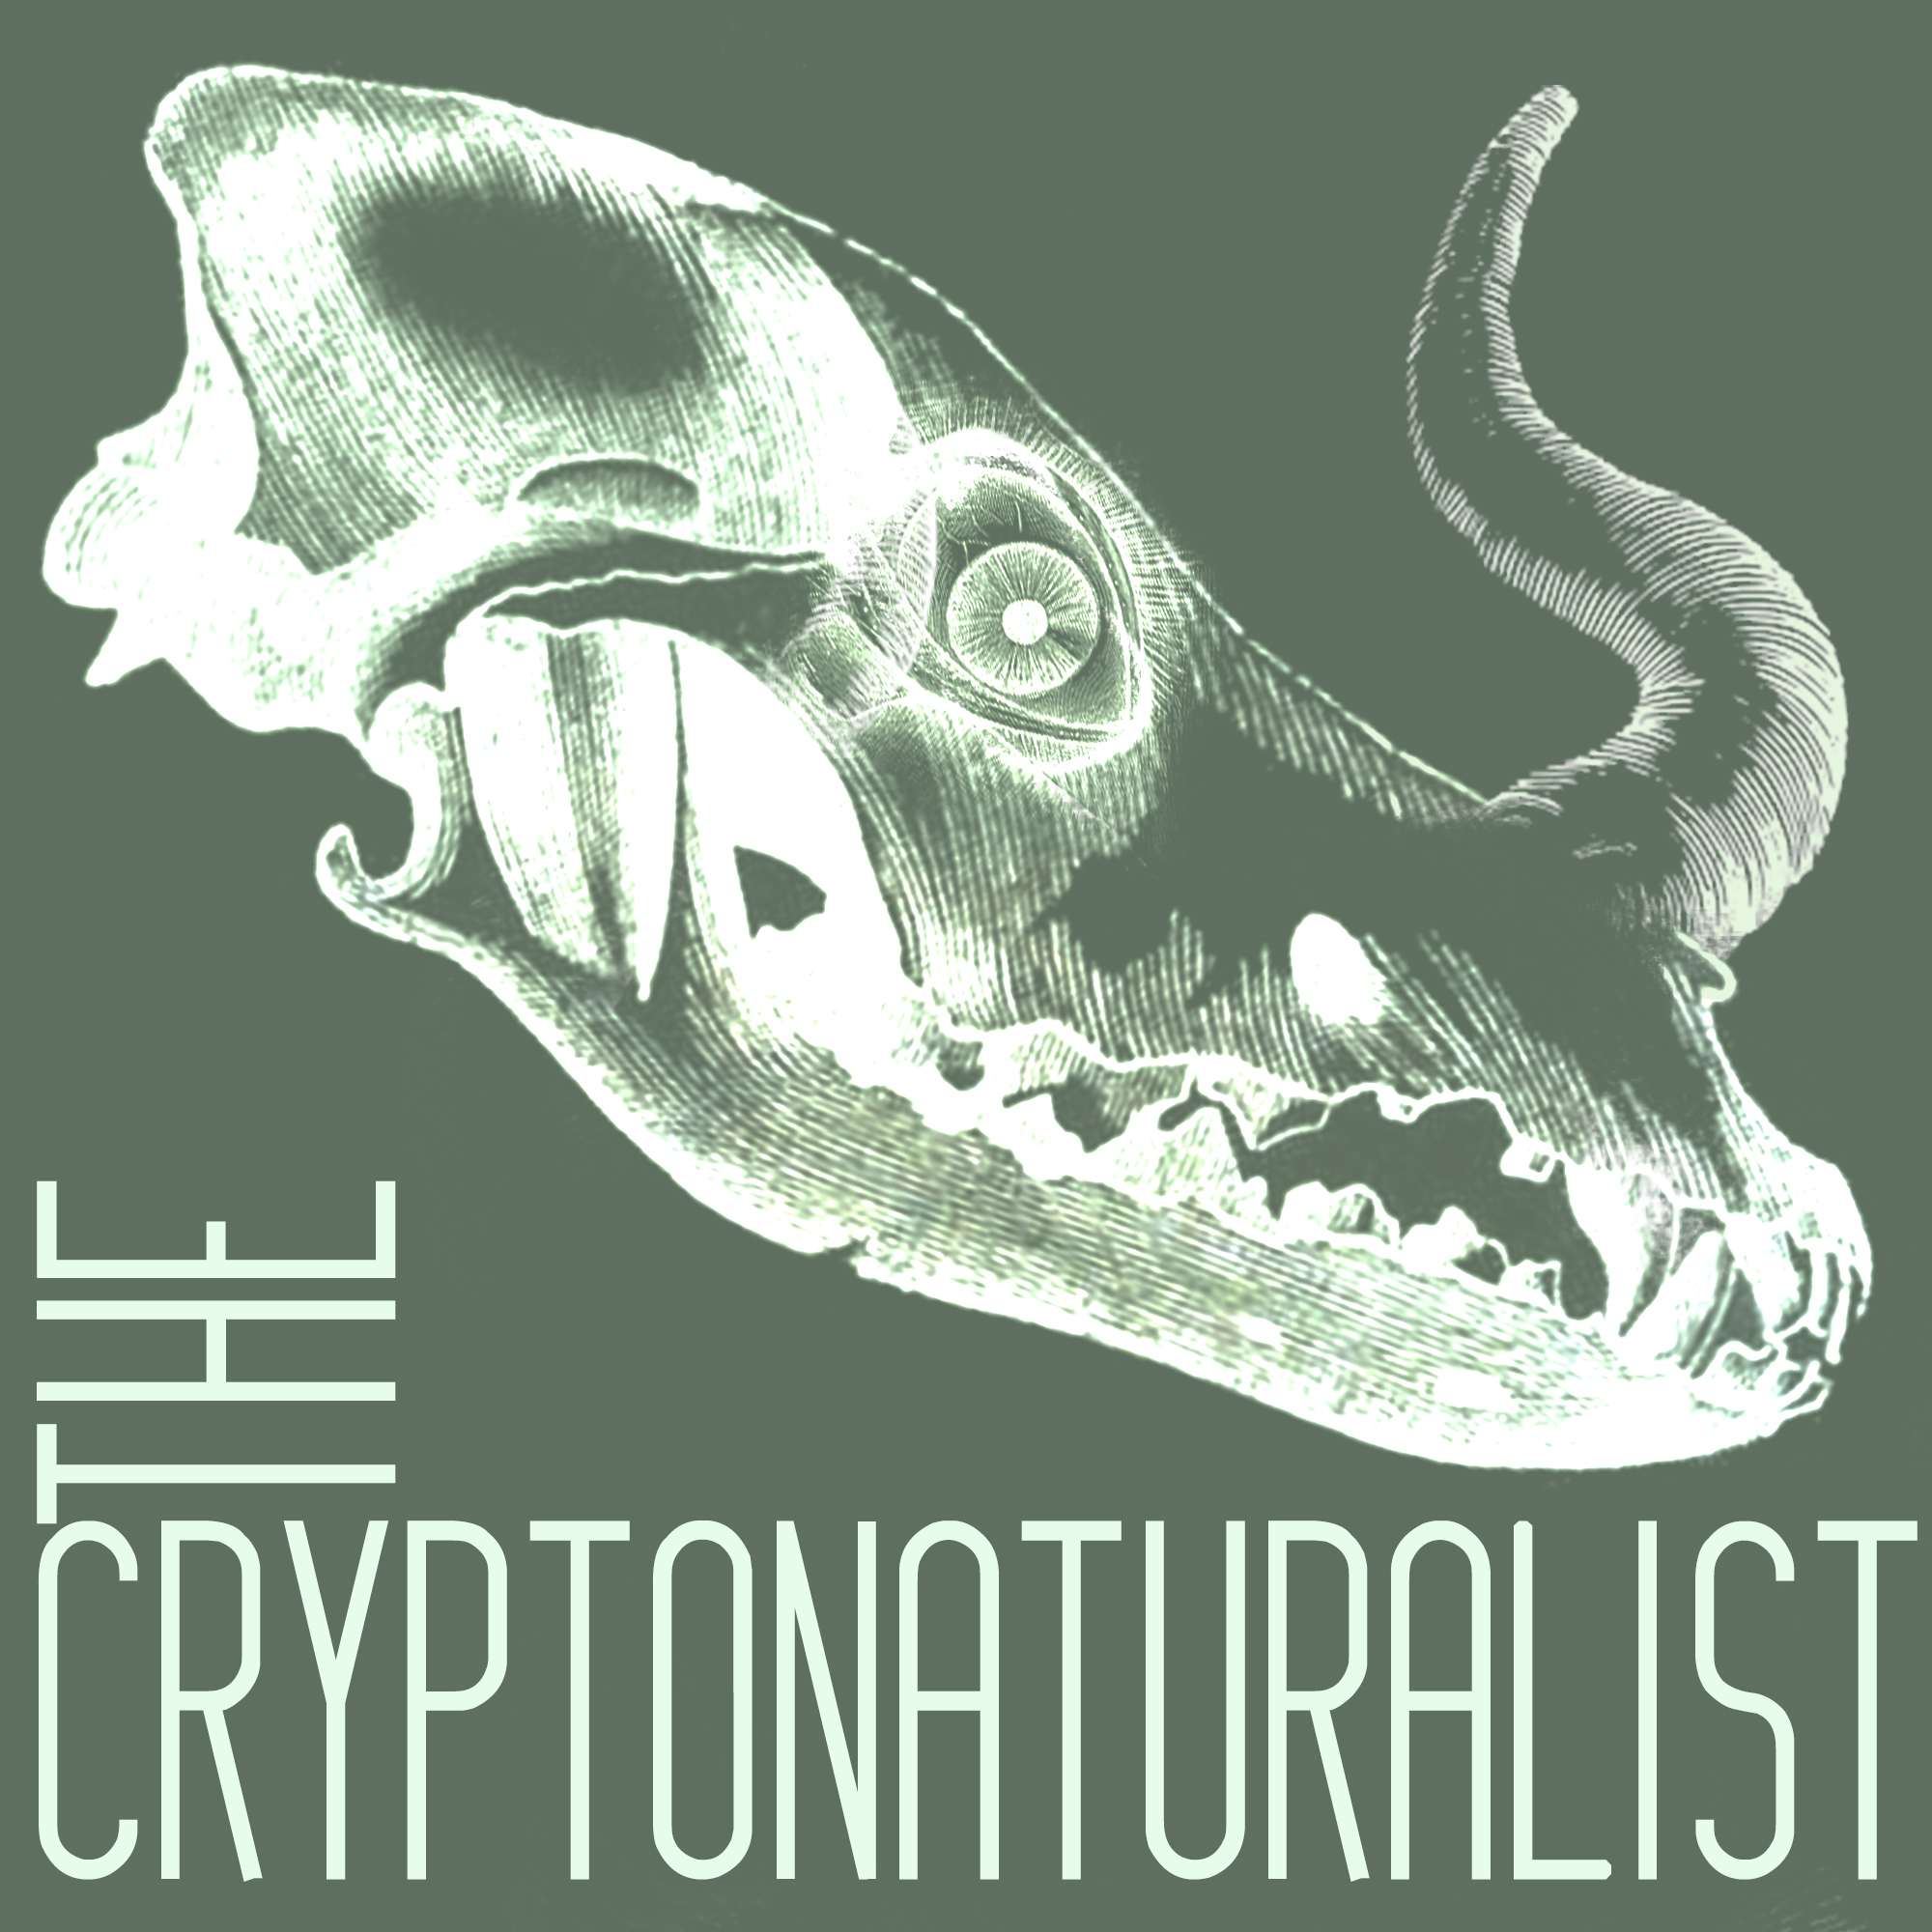 The CryptoNaturalist is a bi-weekly scripted audio drama that brings strange nature to strange listeners.